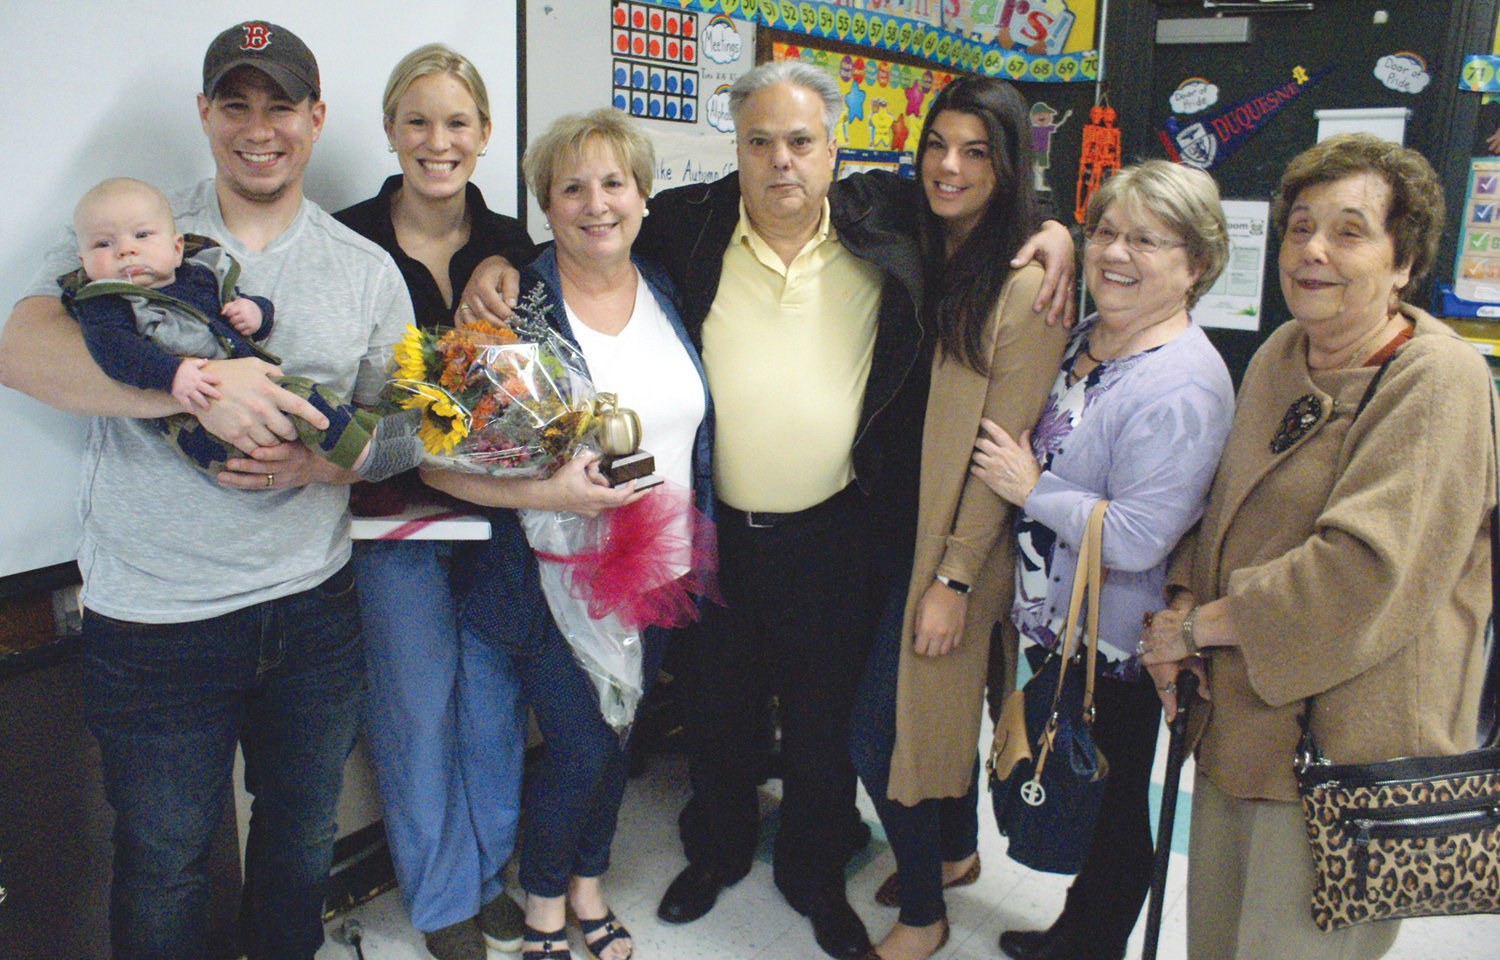 FAMILY MATTERS: After receiving the Golden Apple Award, Judy Maurano posed for a photograph with family members who surprised her during the award ceremony.